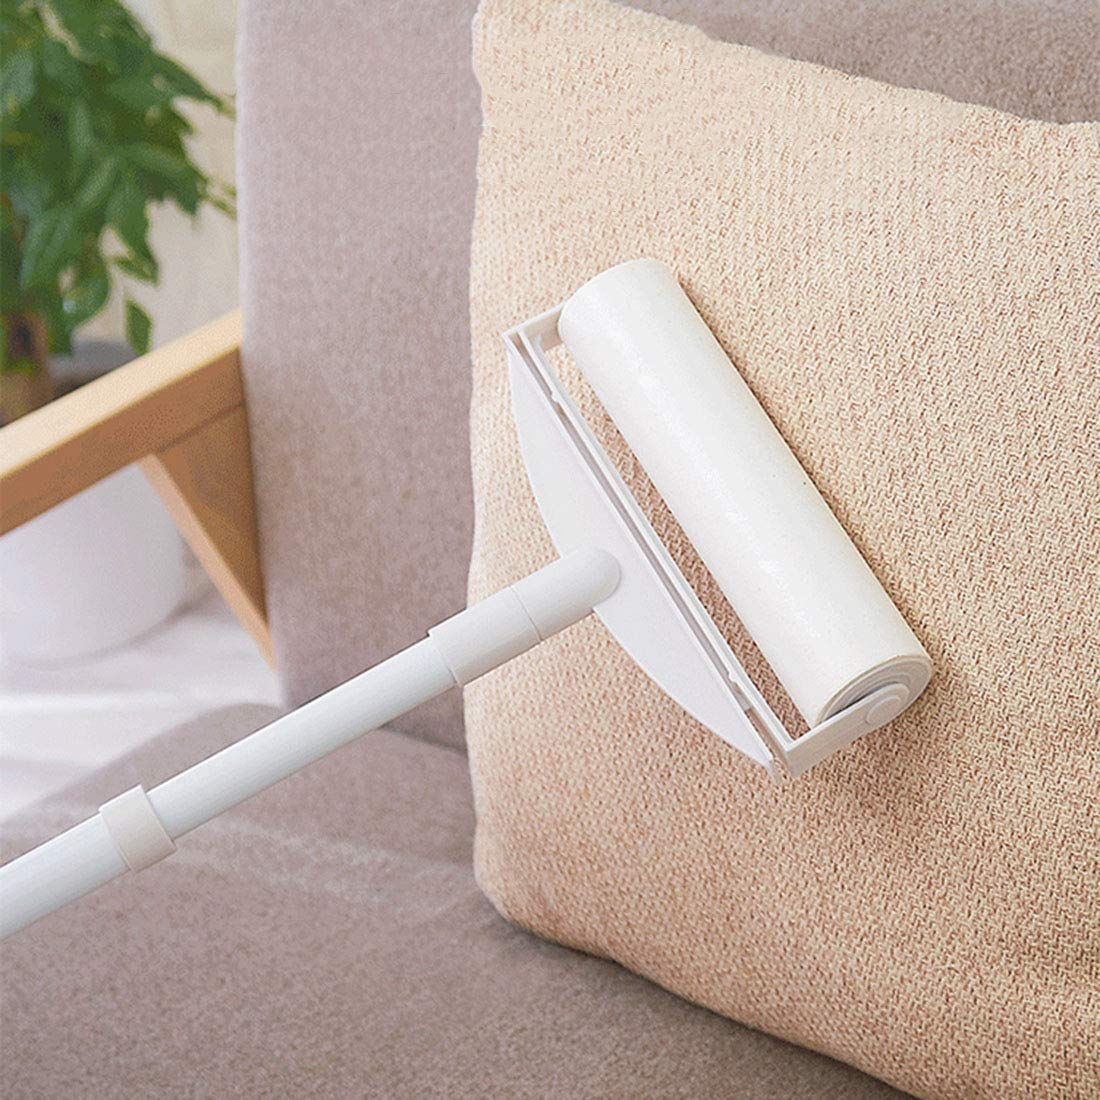 XINGYUE Lint Roller Pet Hair Lint Removers with Long Handle for Clothes Animal Car by XINGYUE (Image #4)